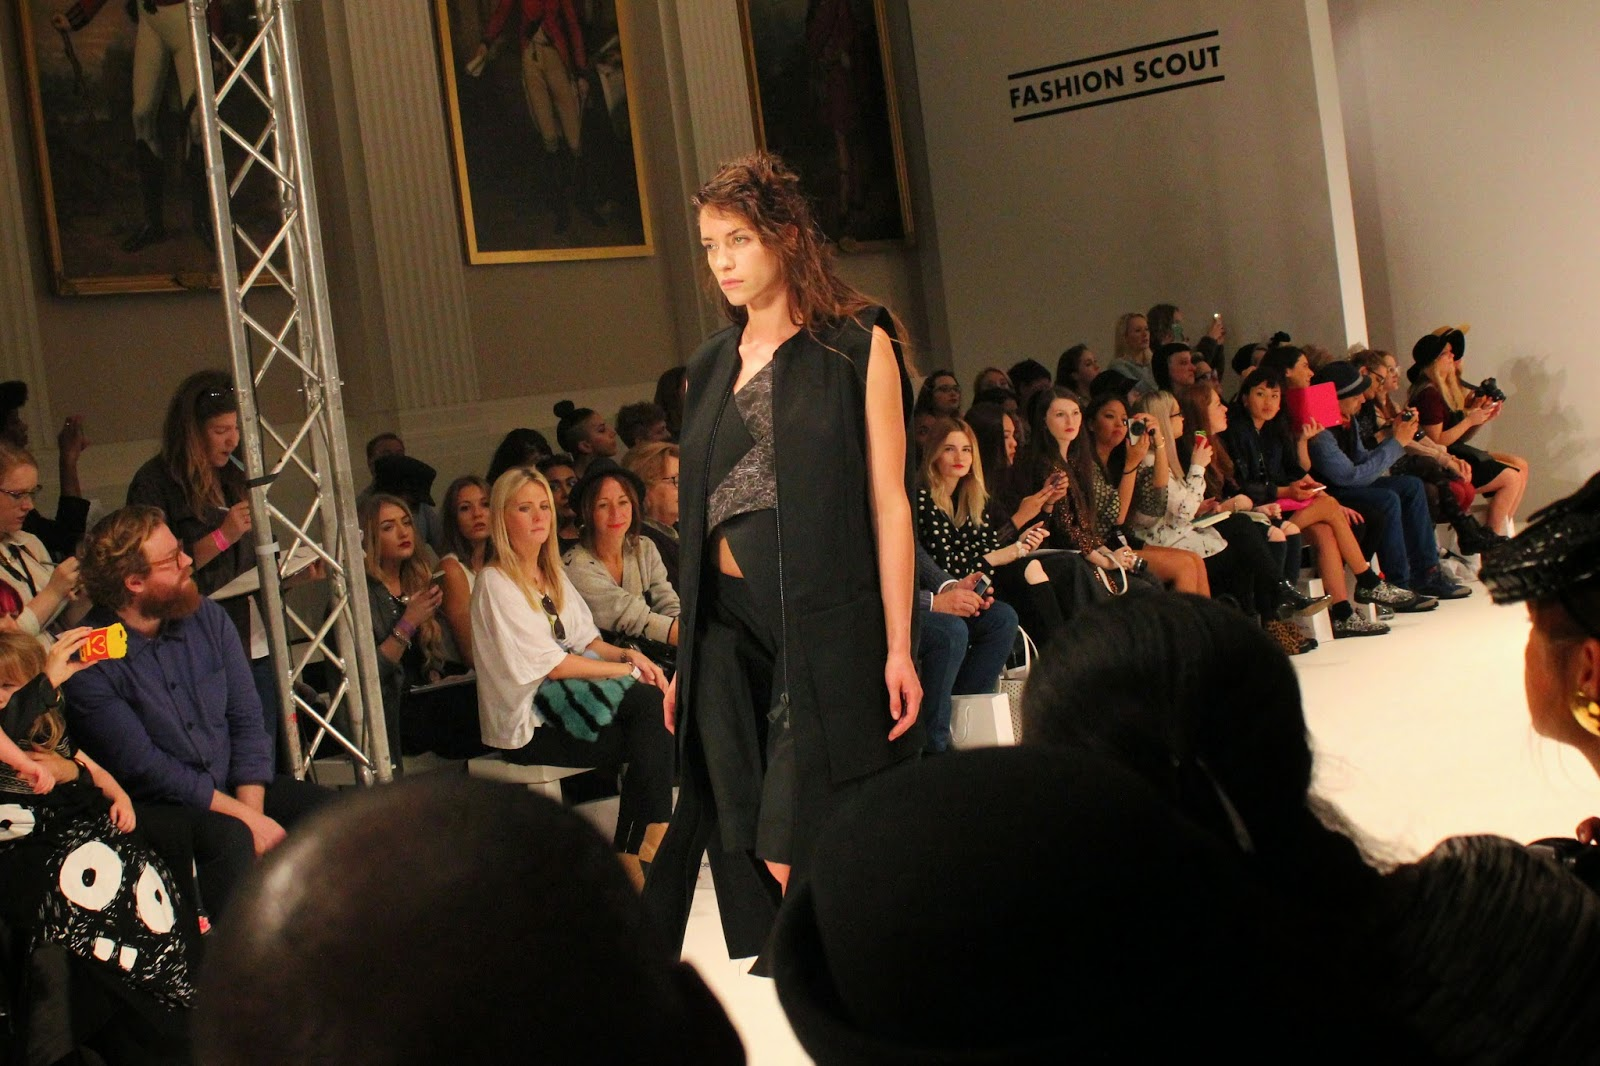 london-fashion-week-2014-lfw-spring-summer-2015-blogger-fashion-Dioralop-catwalk-models-freemasons hall-fashion-scout-dress